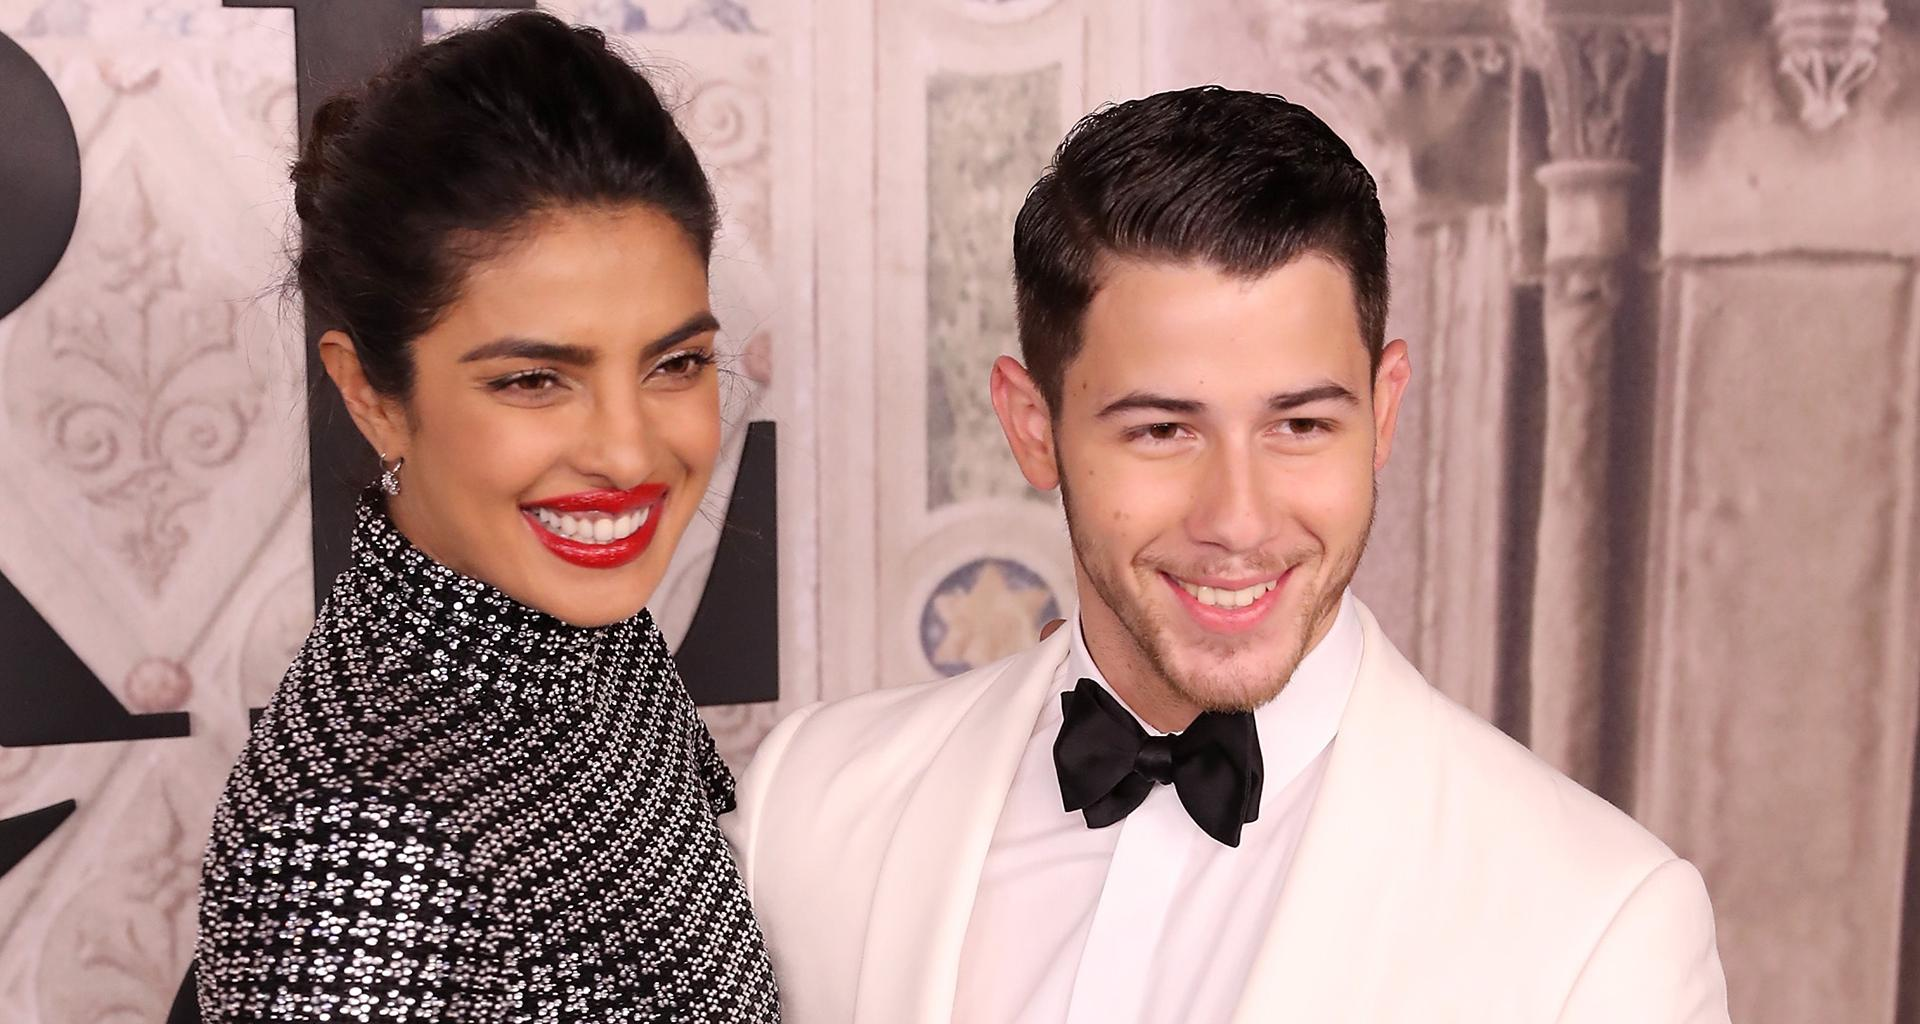 Nick Jonas And Priyanka Chopra's Relationship Only Strengthened By The Quarantine - They Are 'Still In The Honeymoon Phase'